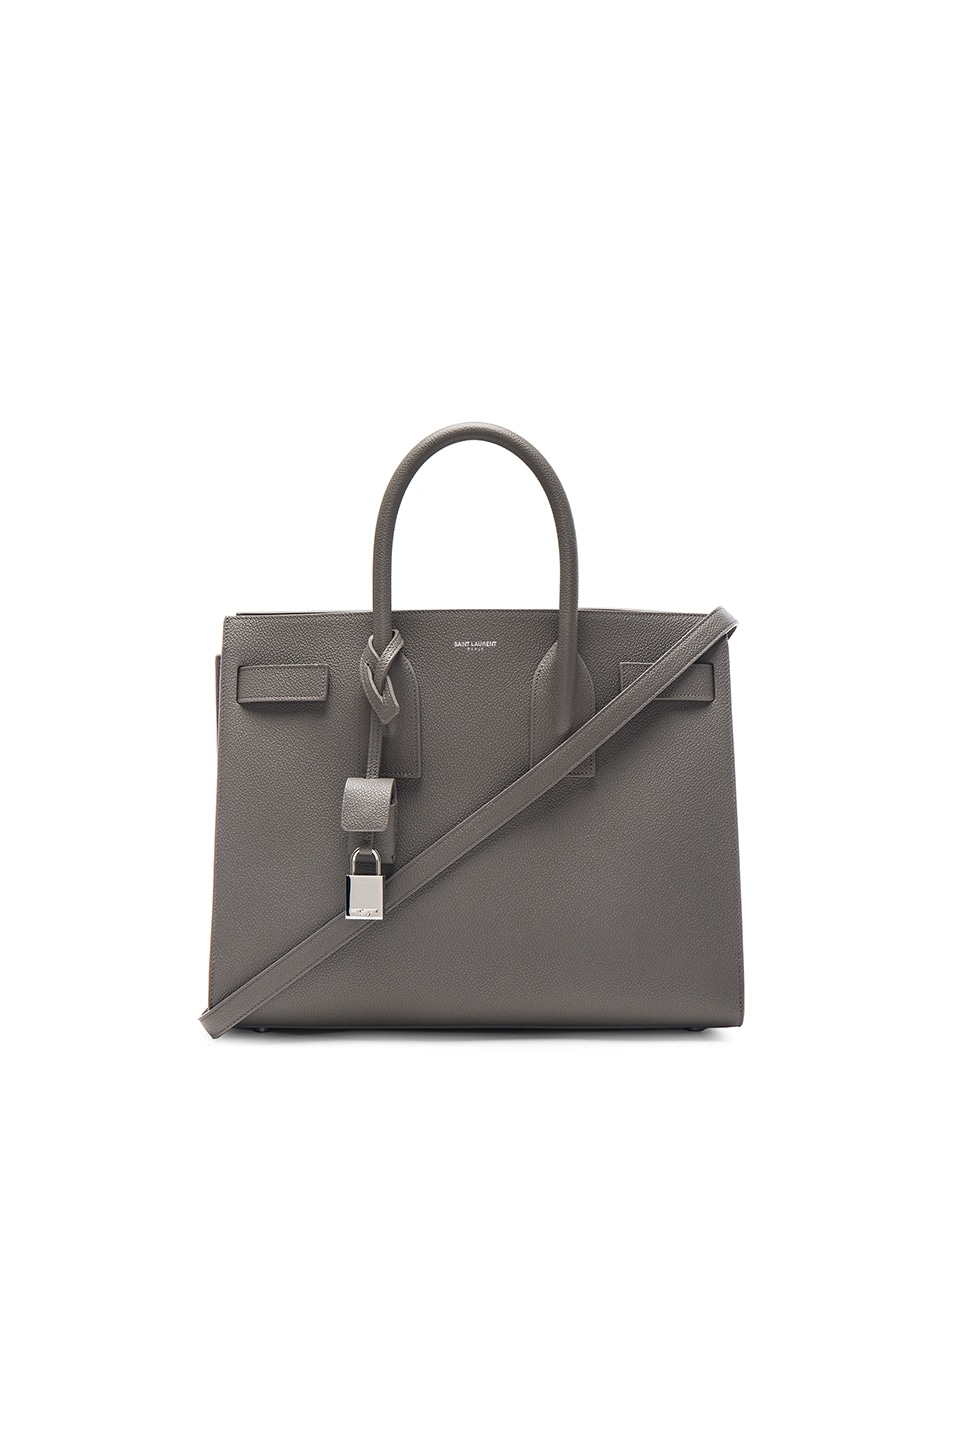 Image 1 of Saint Laurent Small Sac De Jour in Fog